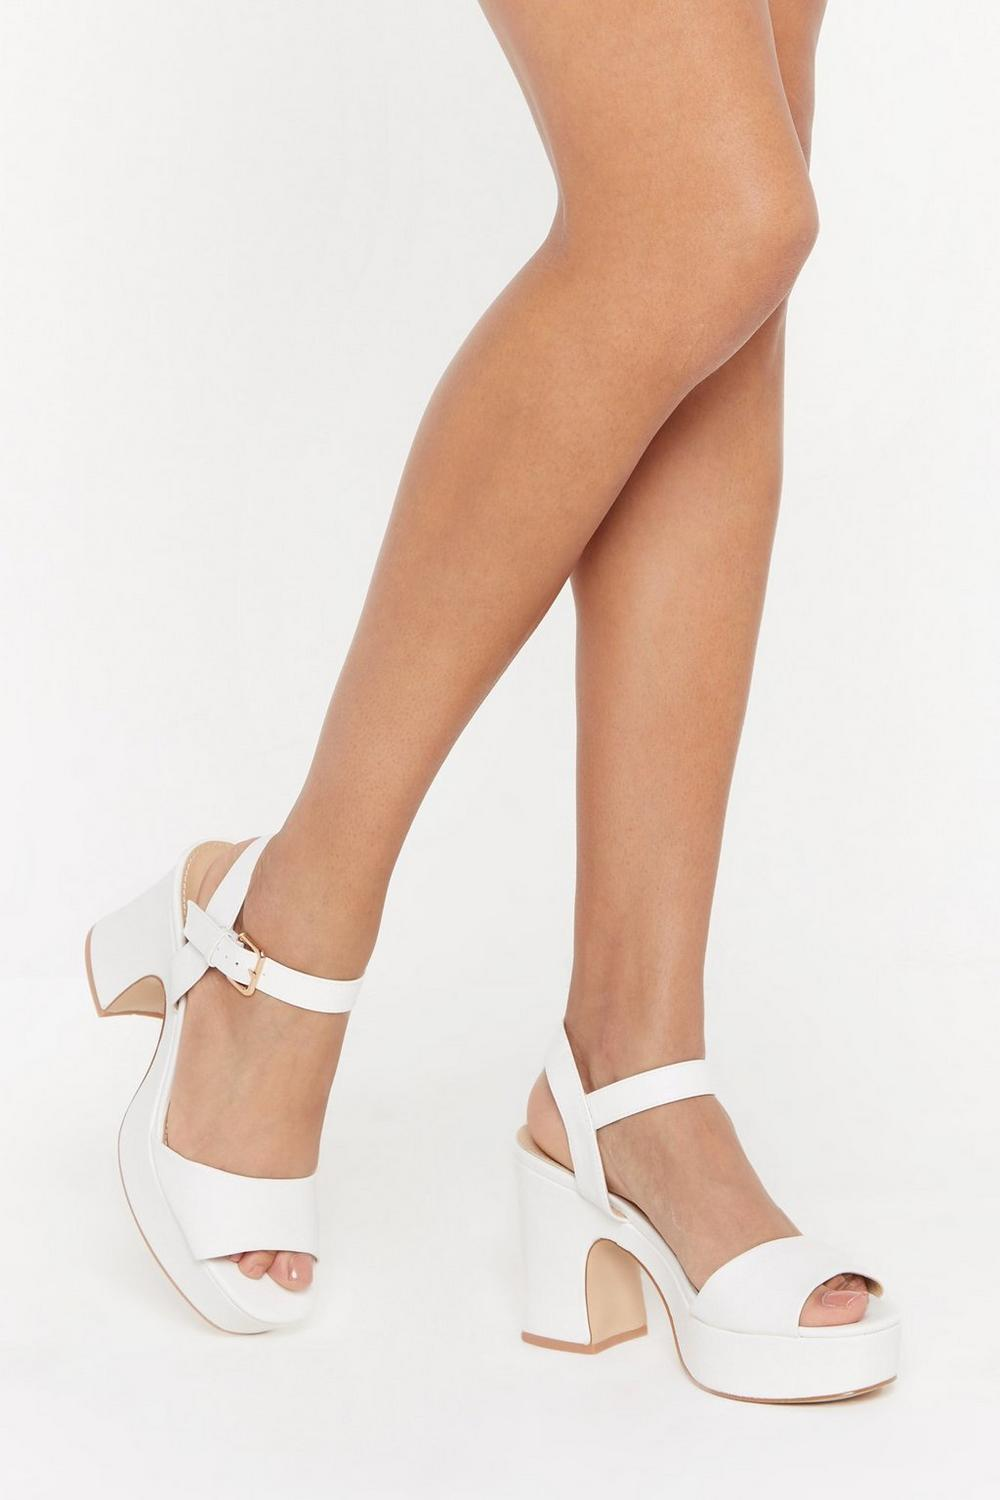 Notch This Again Faux Leather Platform Heels by Nasty Gal